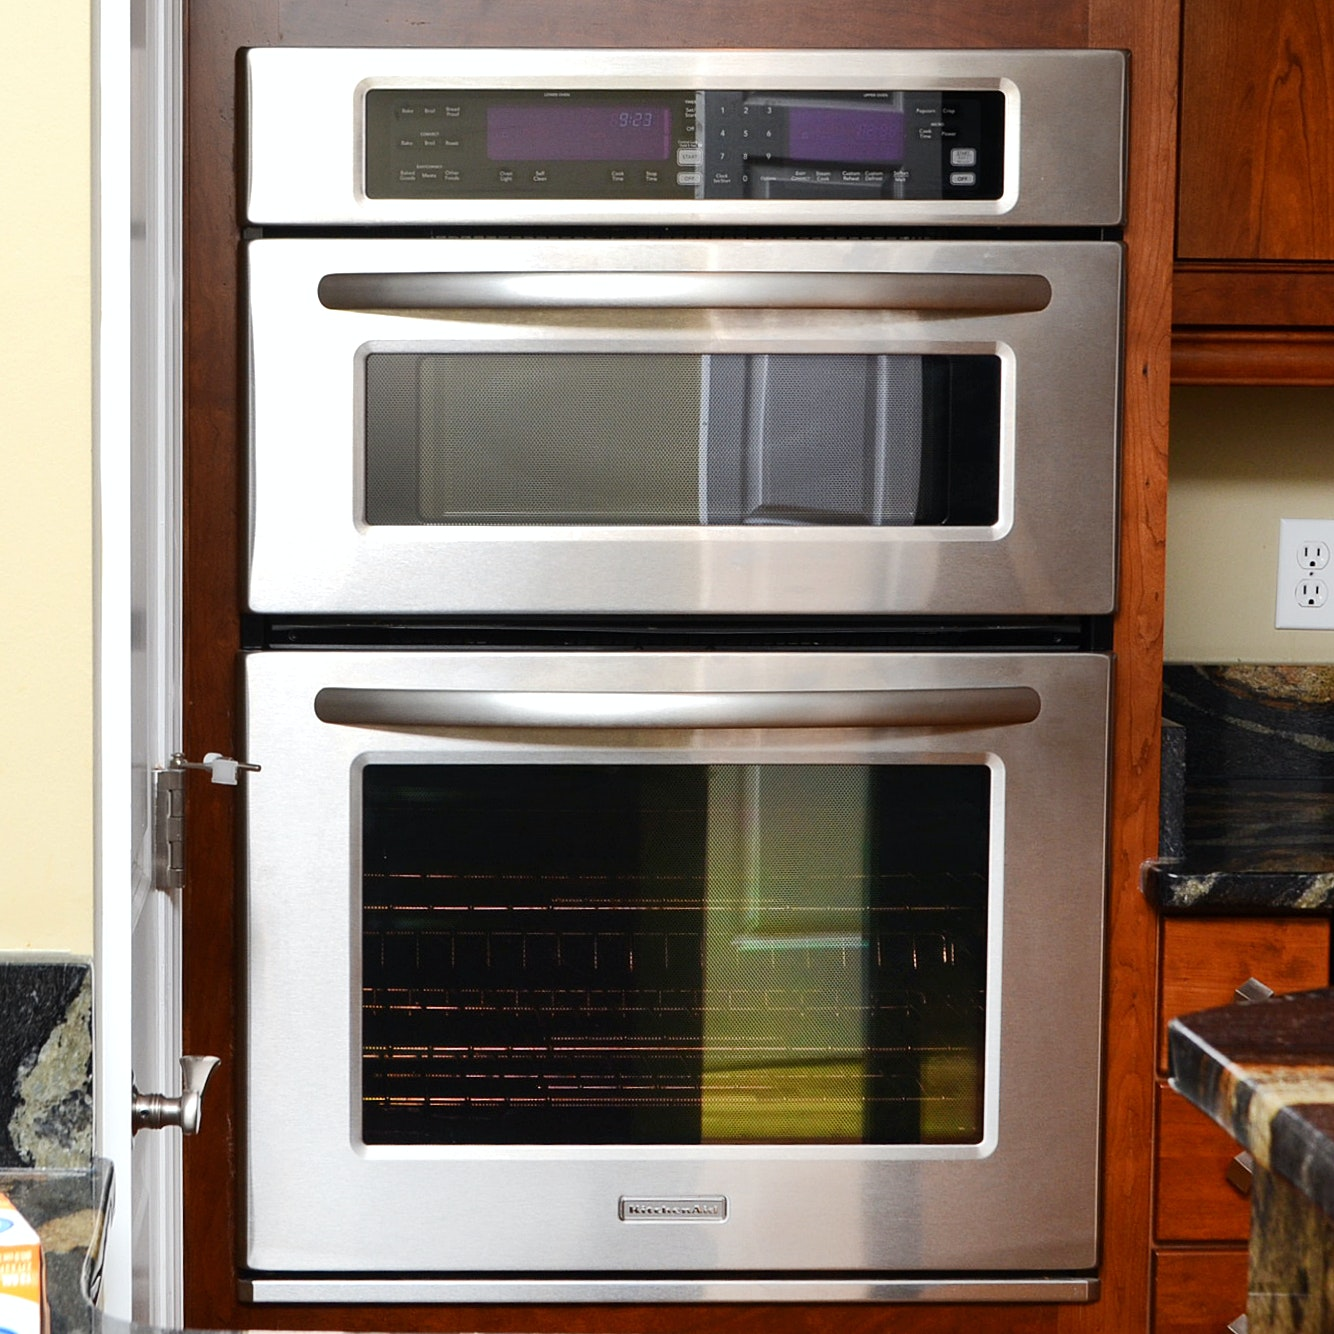 Kitchenaid Built In Microwave Oven Bestmicrowave